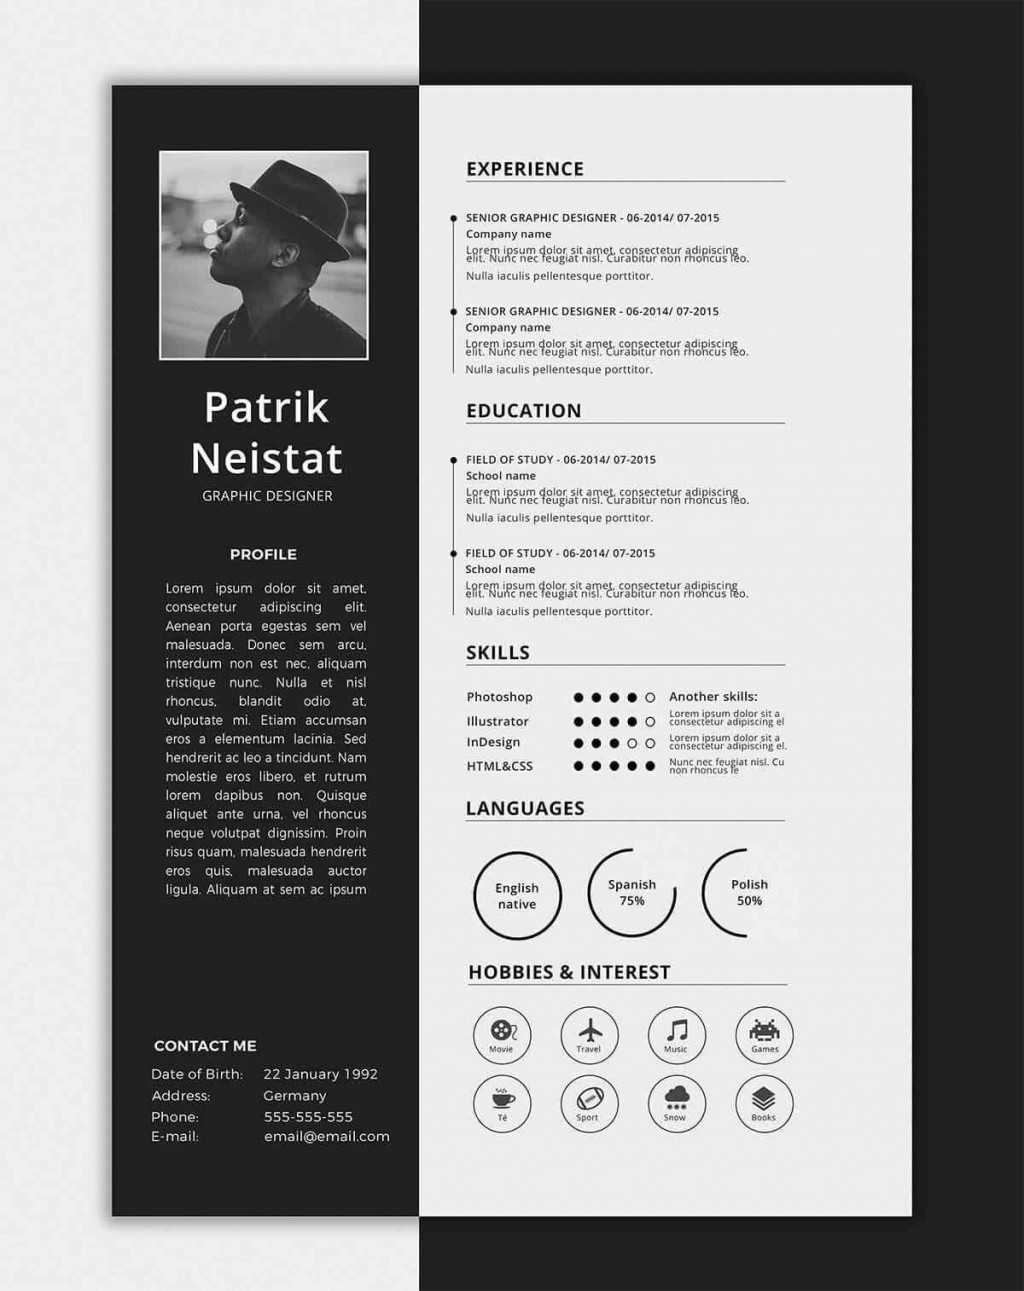 004 Wonderful 1 Page Resume Template Example  Templates One Basic Word Free Html DownloadLarge